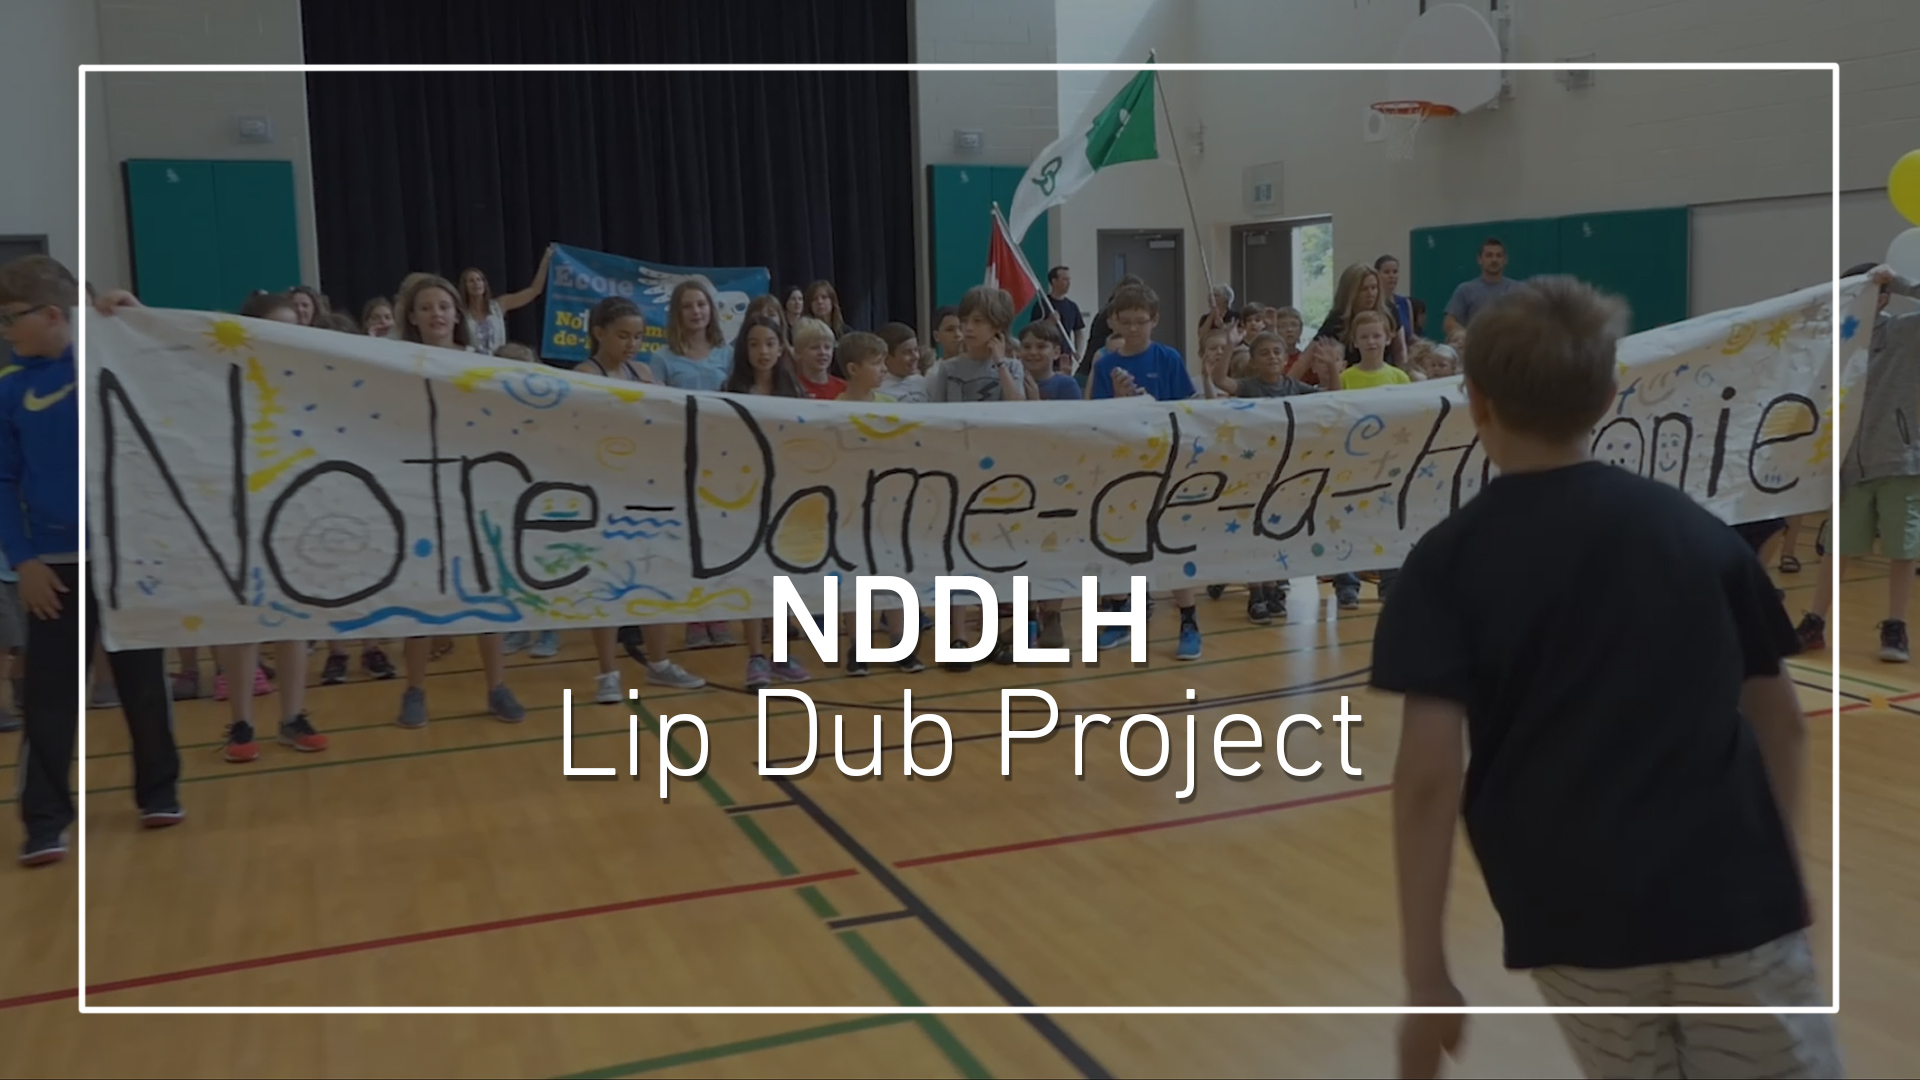 Lip Dub project with NDDLH in Collingwood